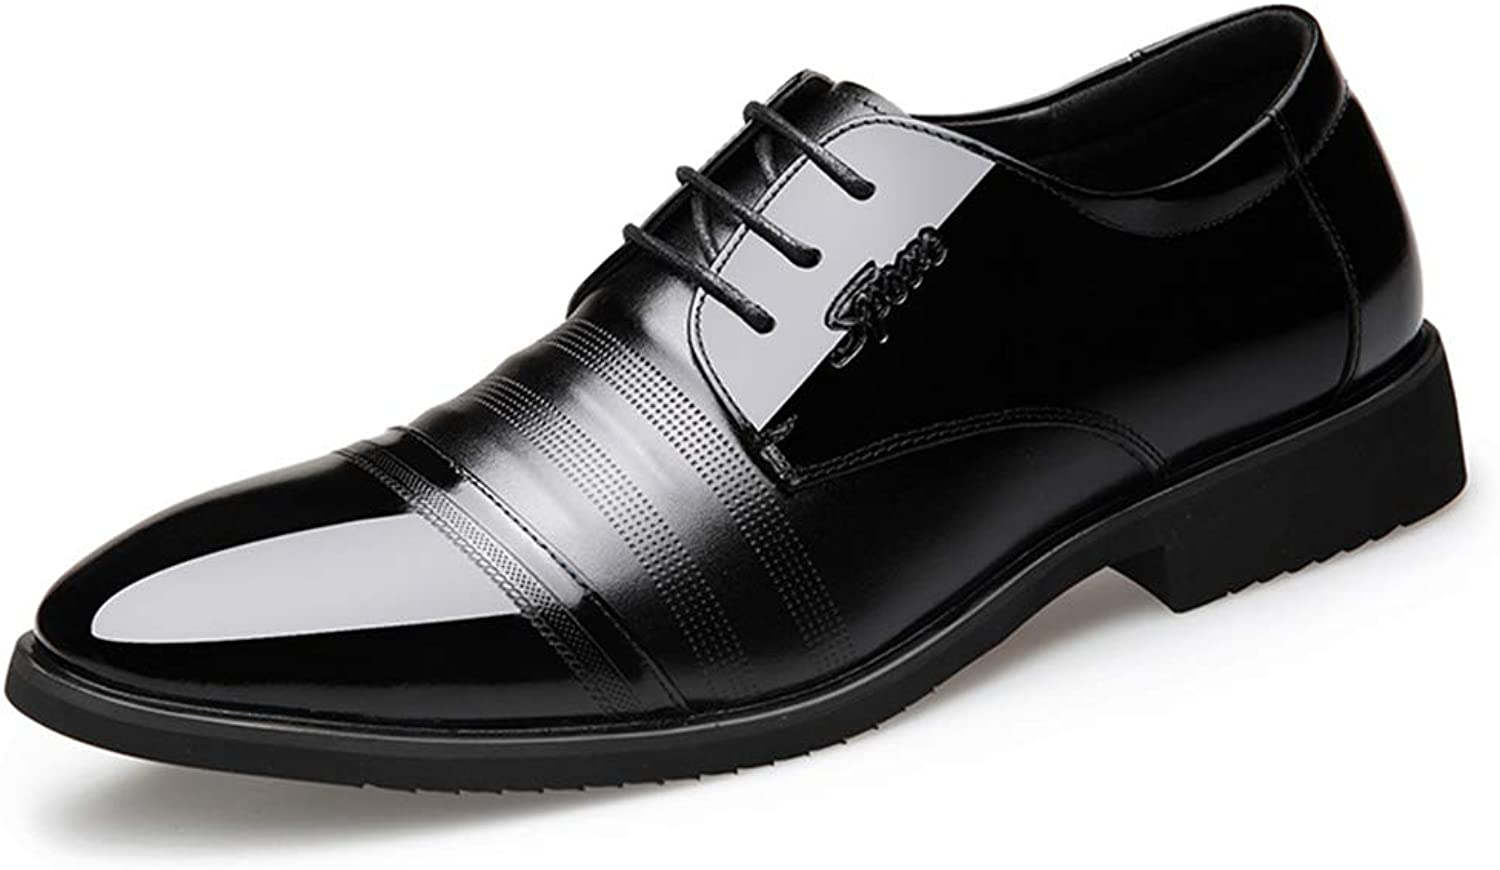 HGDR Mens Black Leather Formal Dress Derby shoes Pointed Toe Business Casual shoes for Wedding Office Party